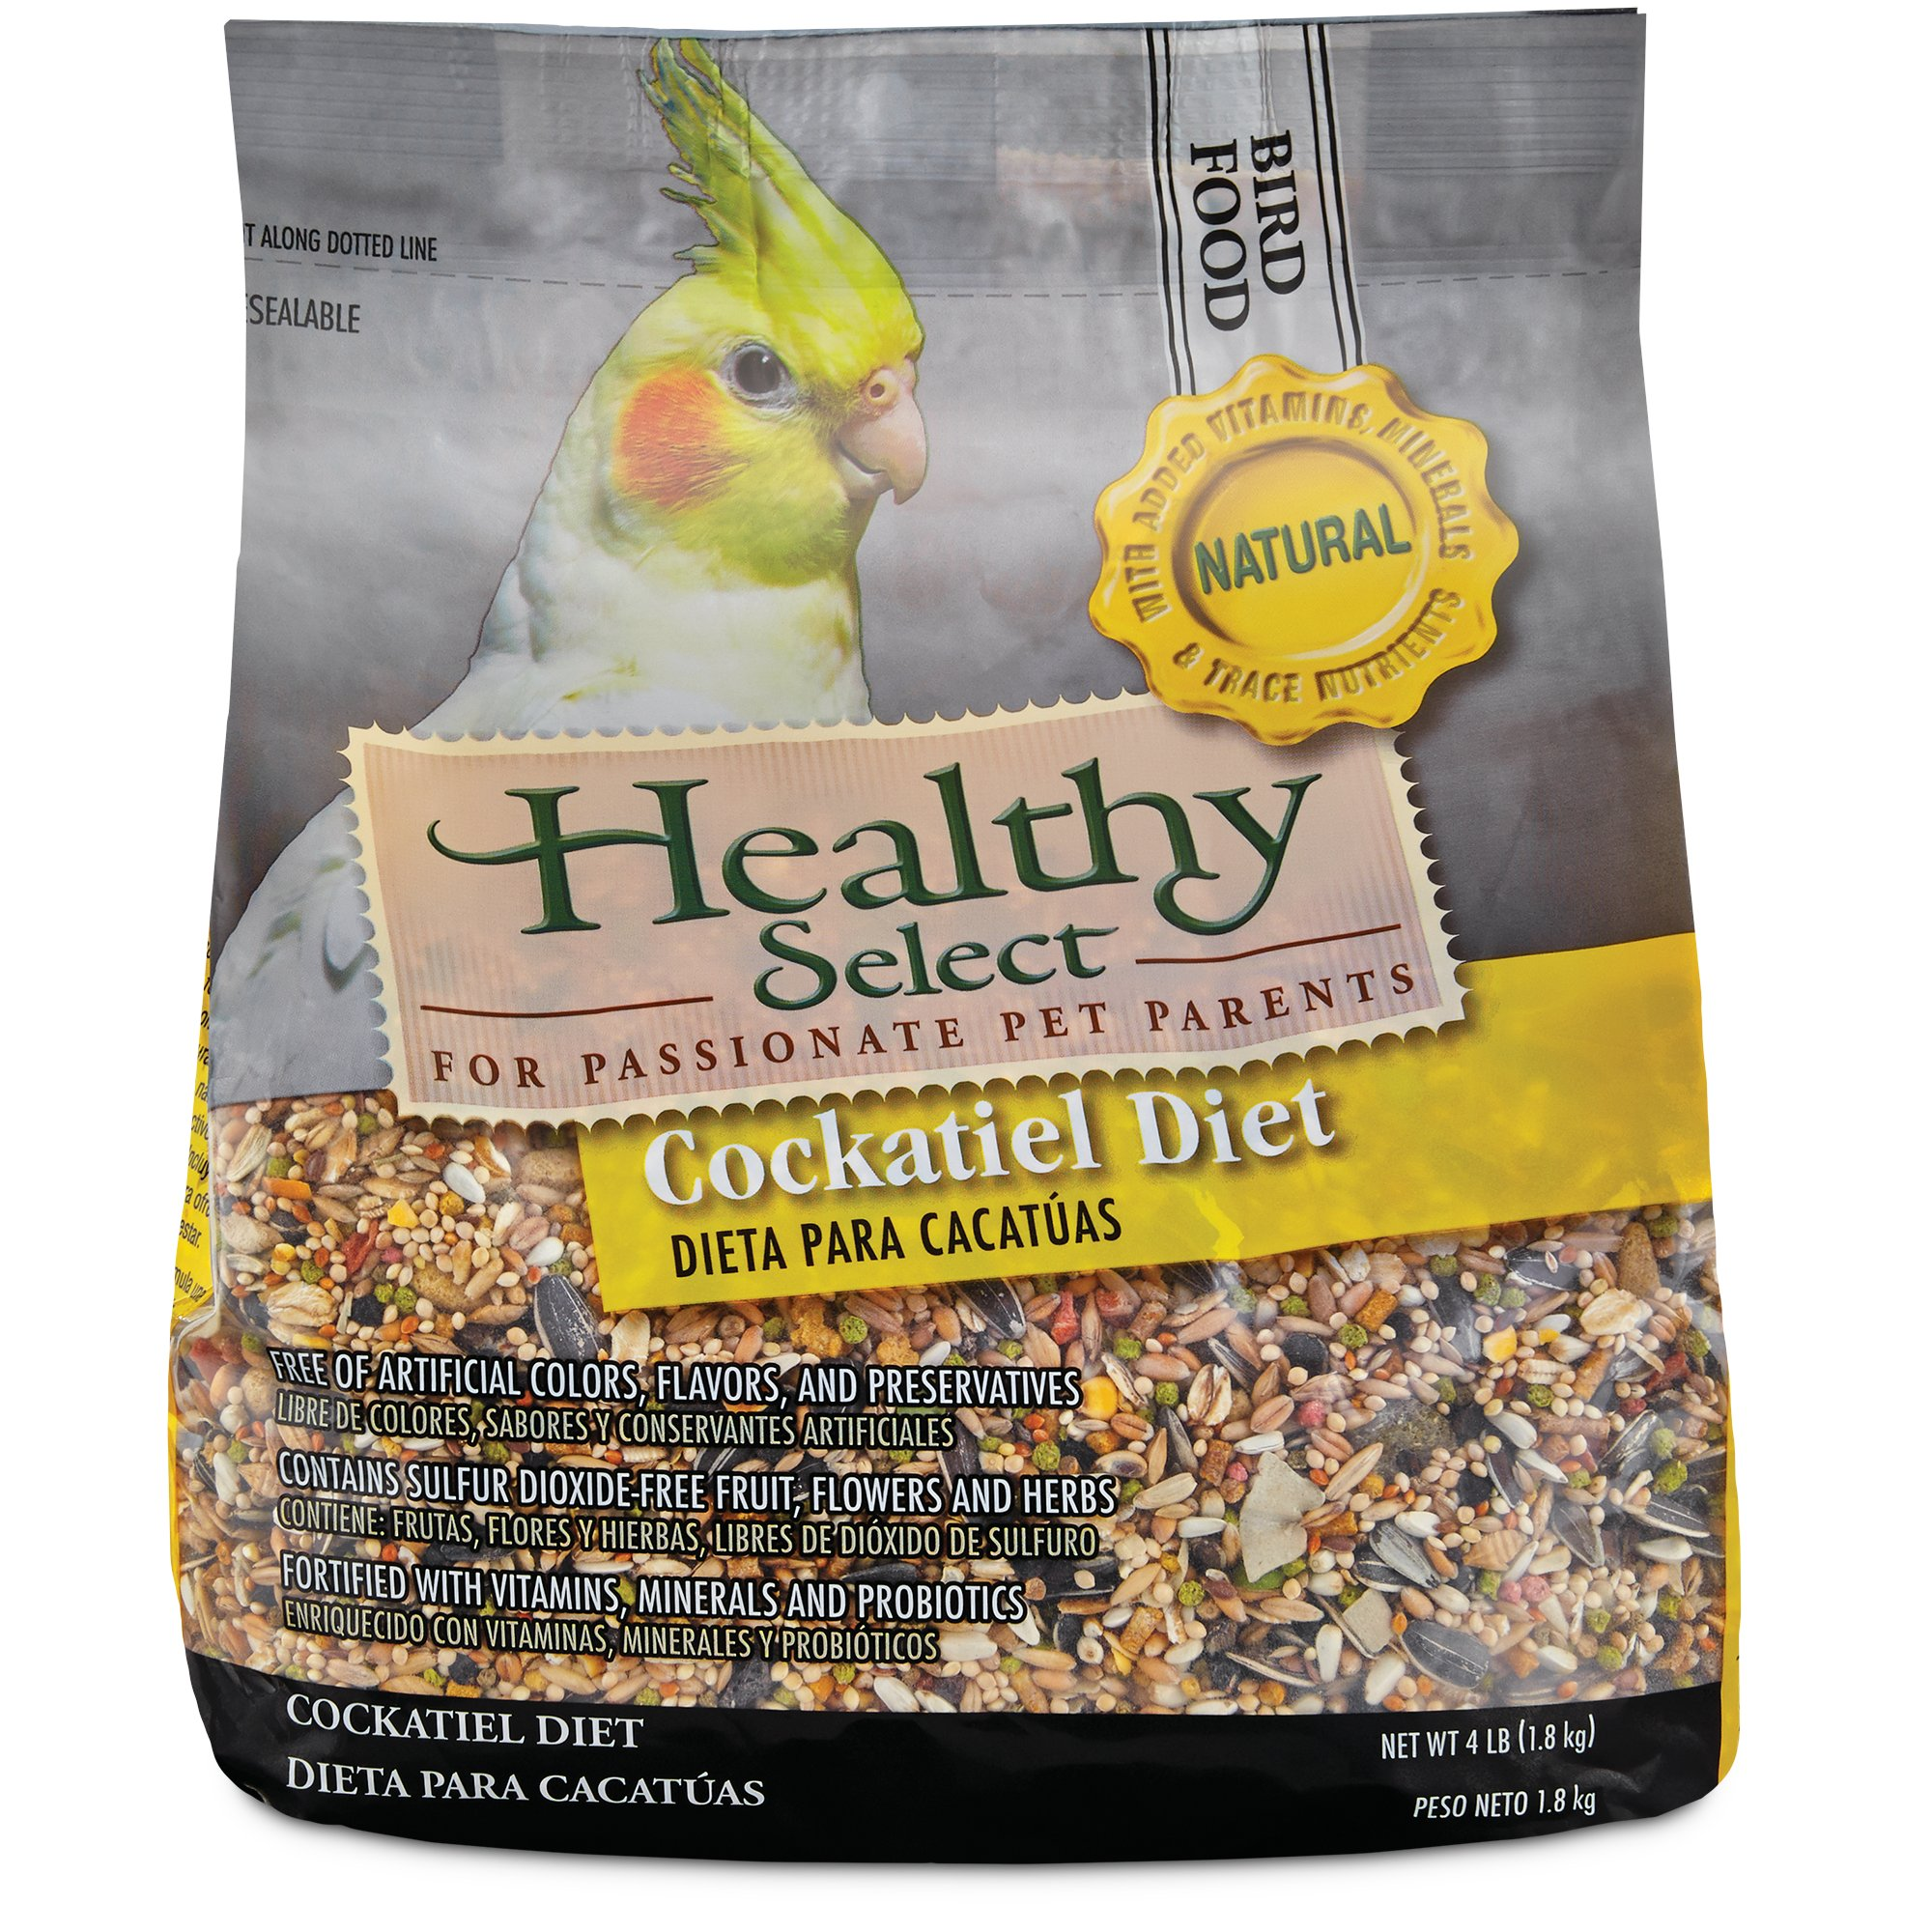 Healthy Select Natural Cockatiel Diet Petco